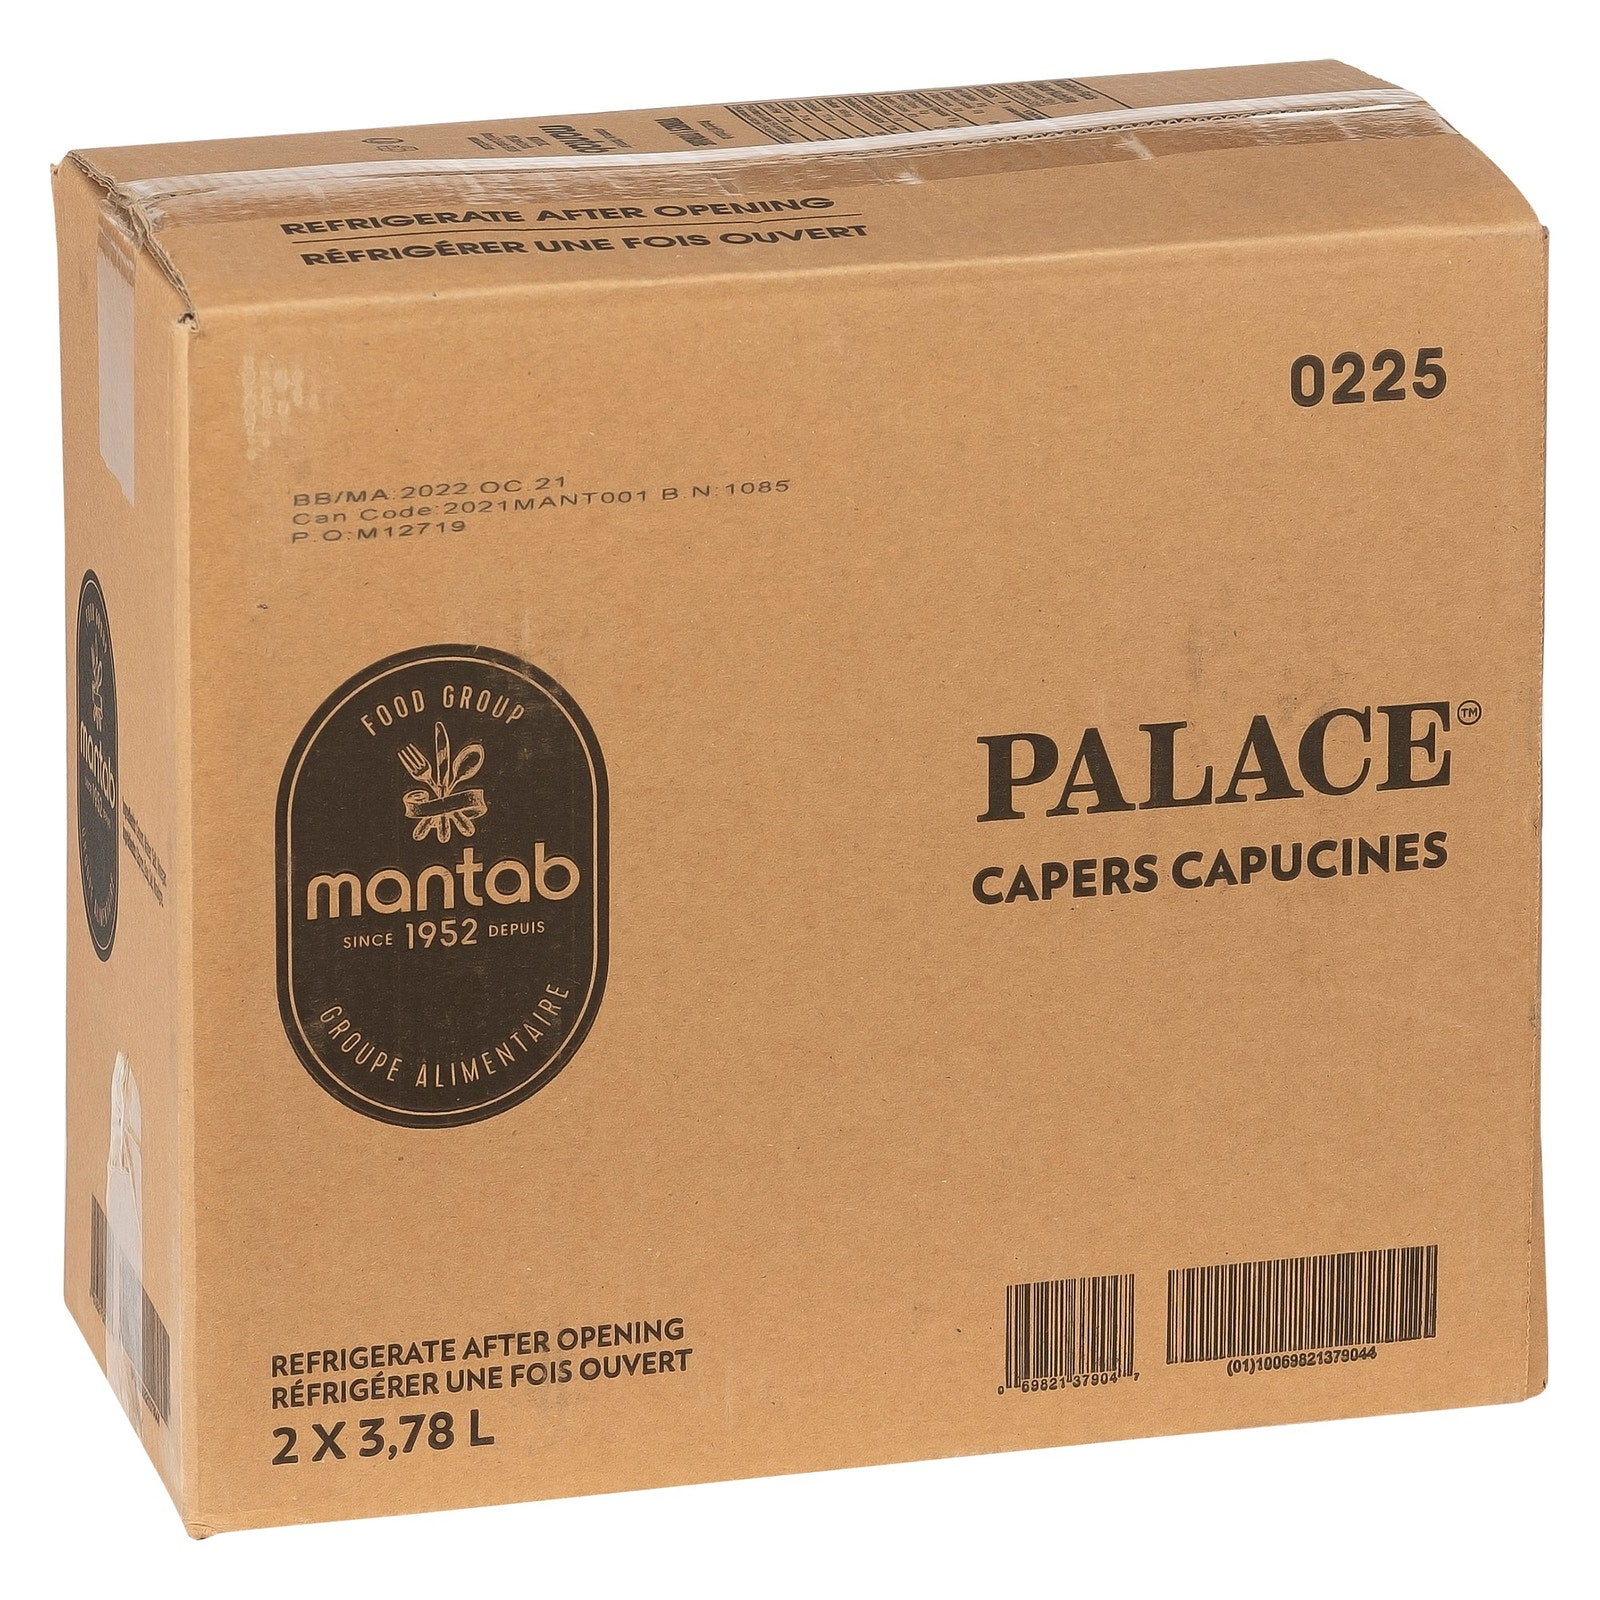 PALACE Capers capucine